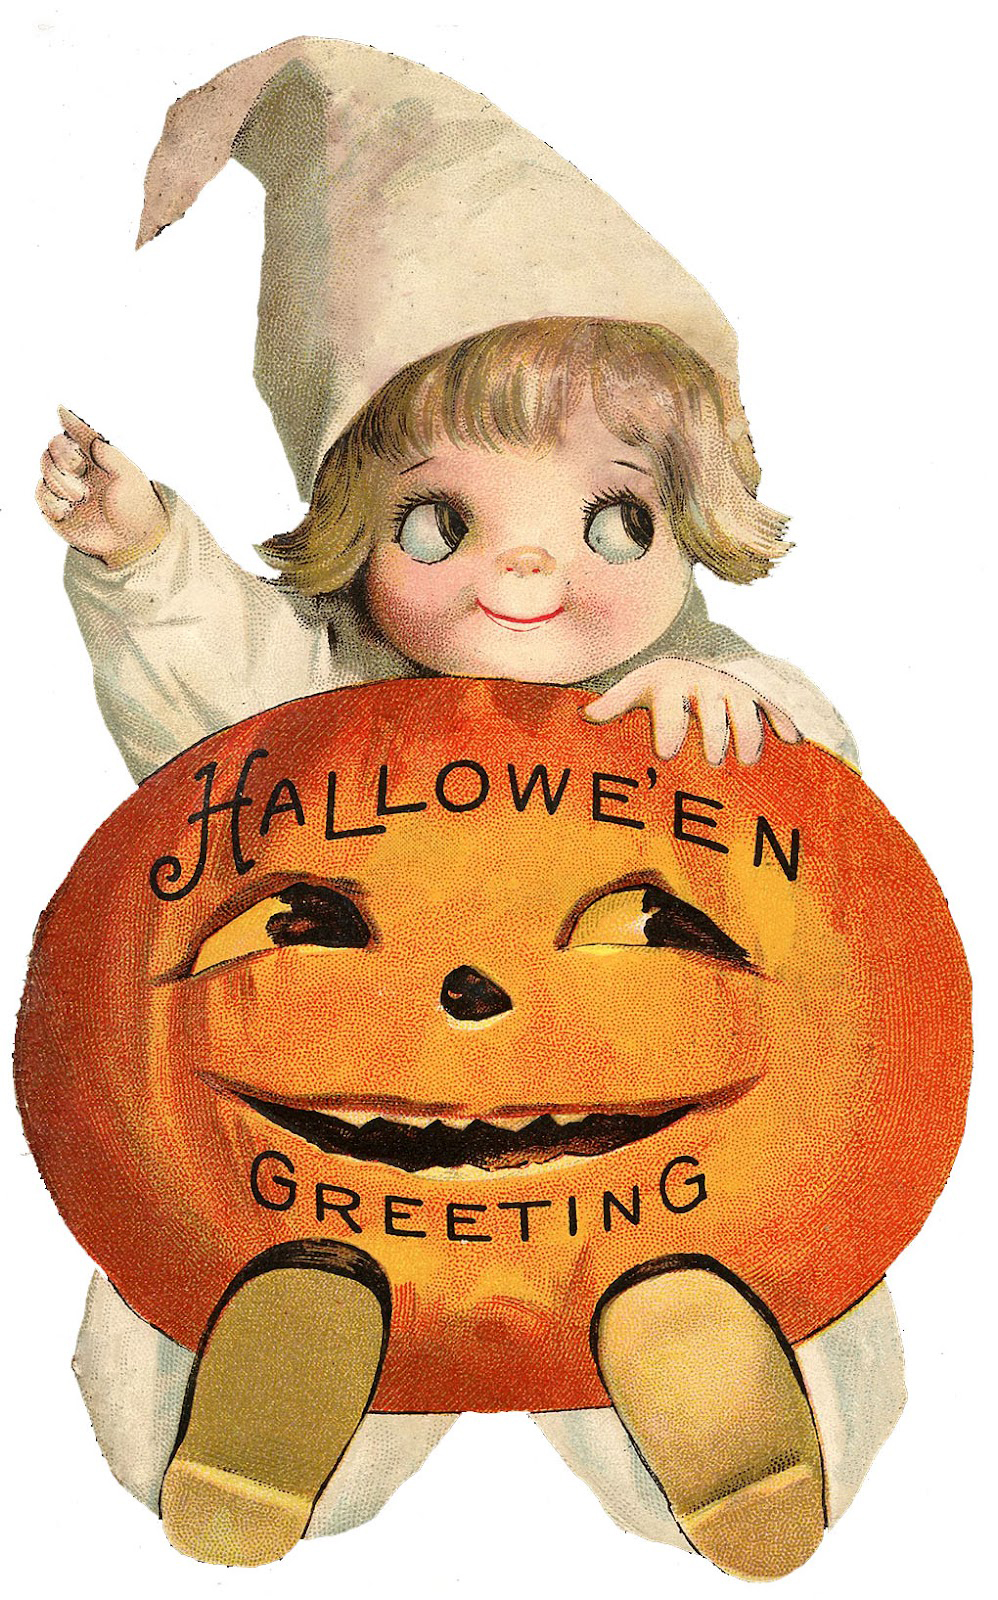 Halloween Vintage Clipart.13 Halloween Kids With Pumpkins Clipart The Graphics Fairy